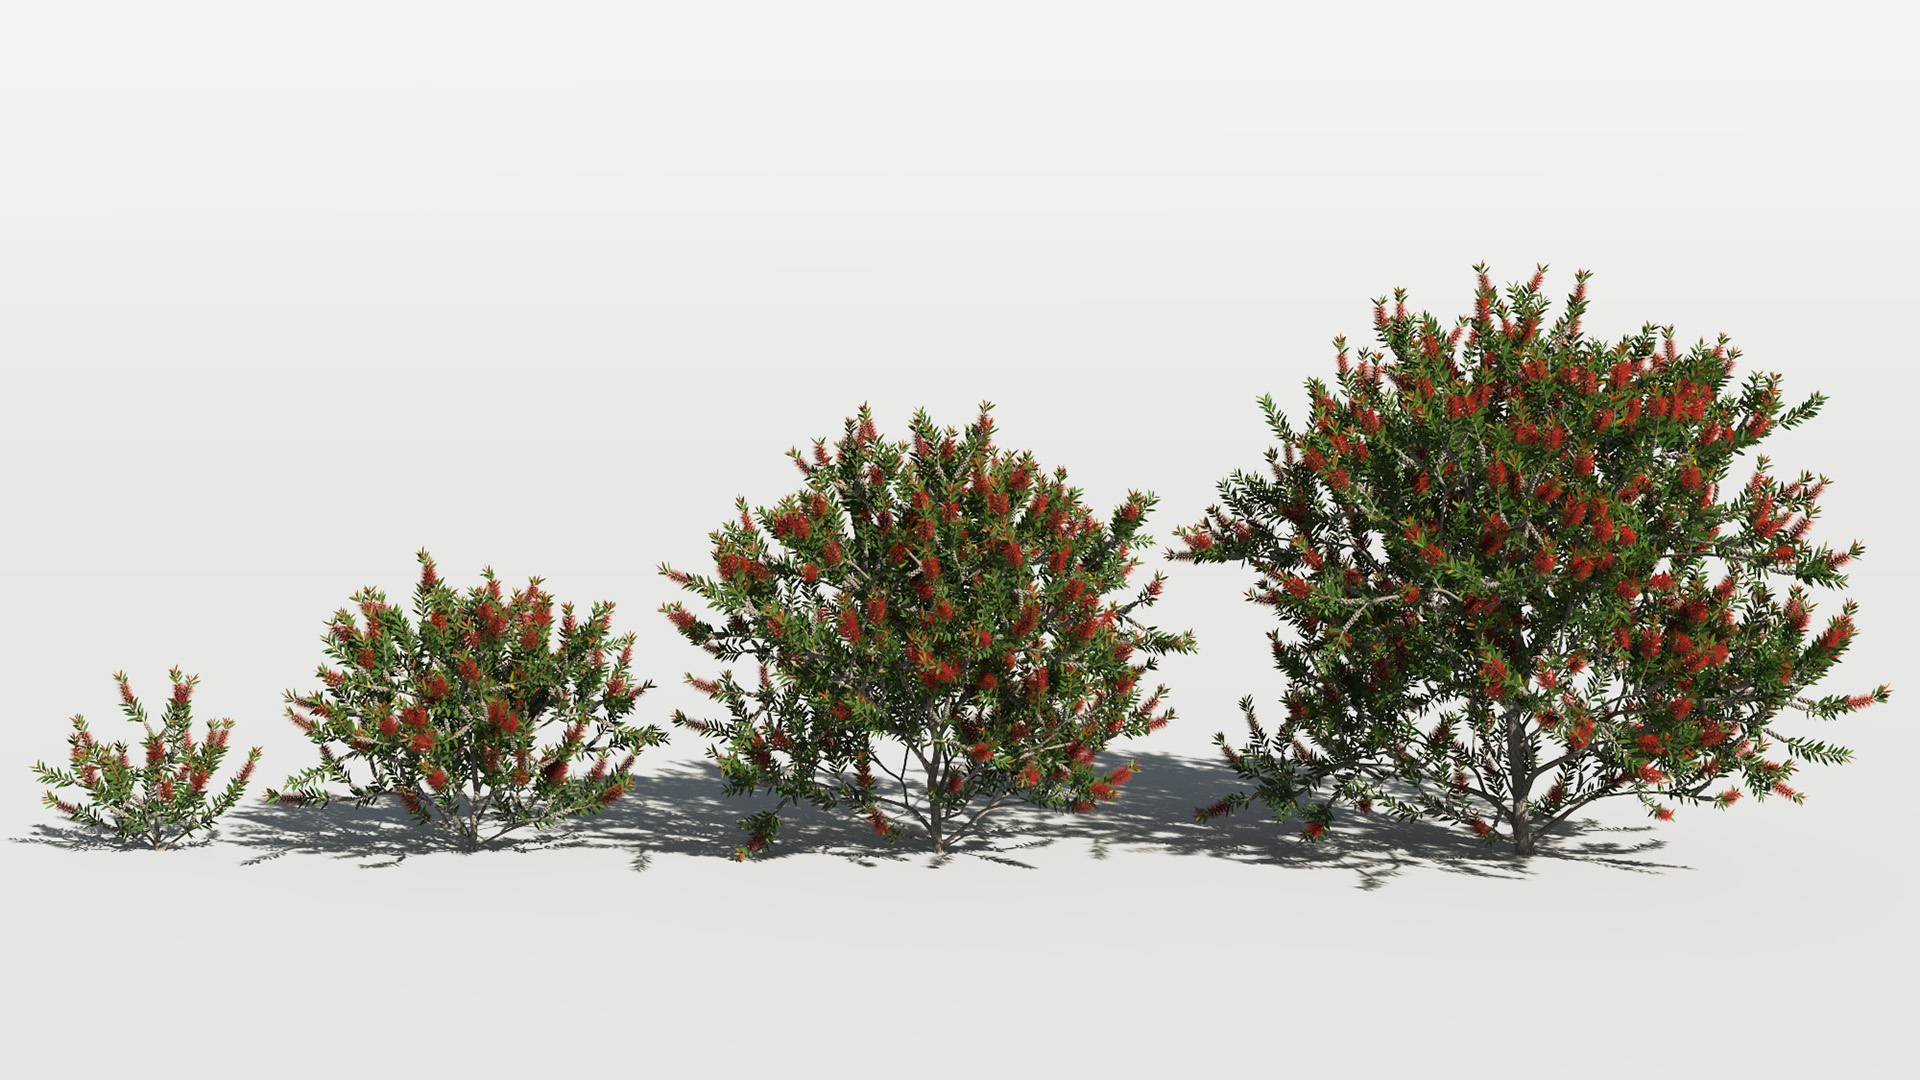 3D model of the Bottlebrush laevis Callistemon laevis maturity variations